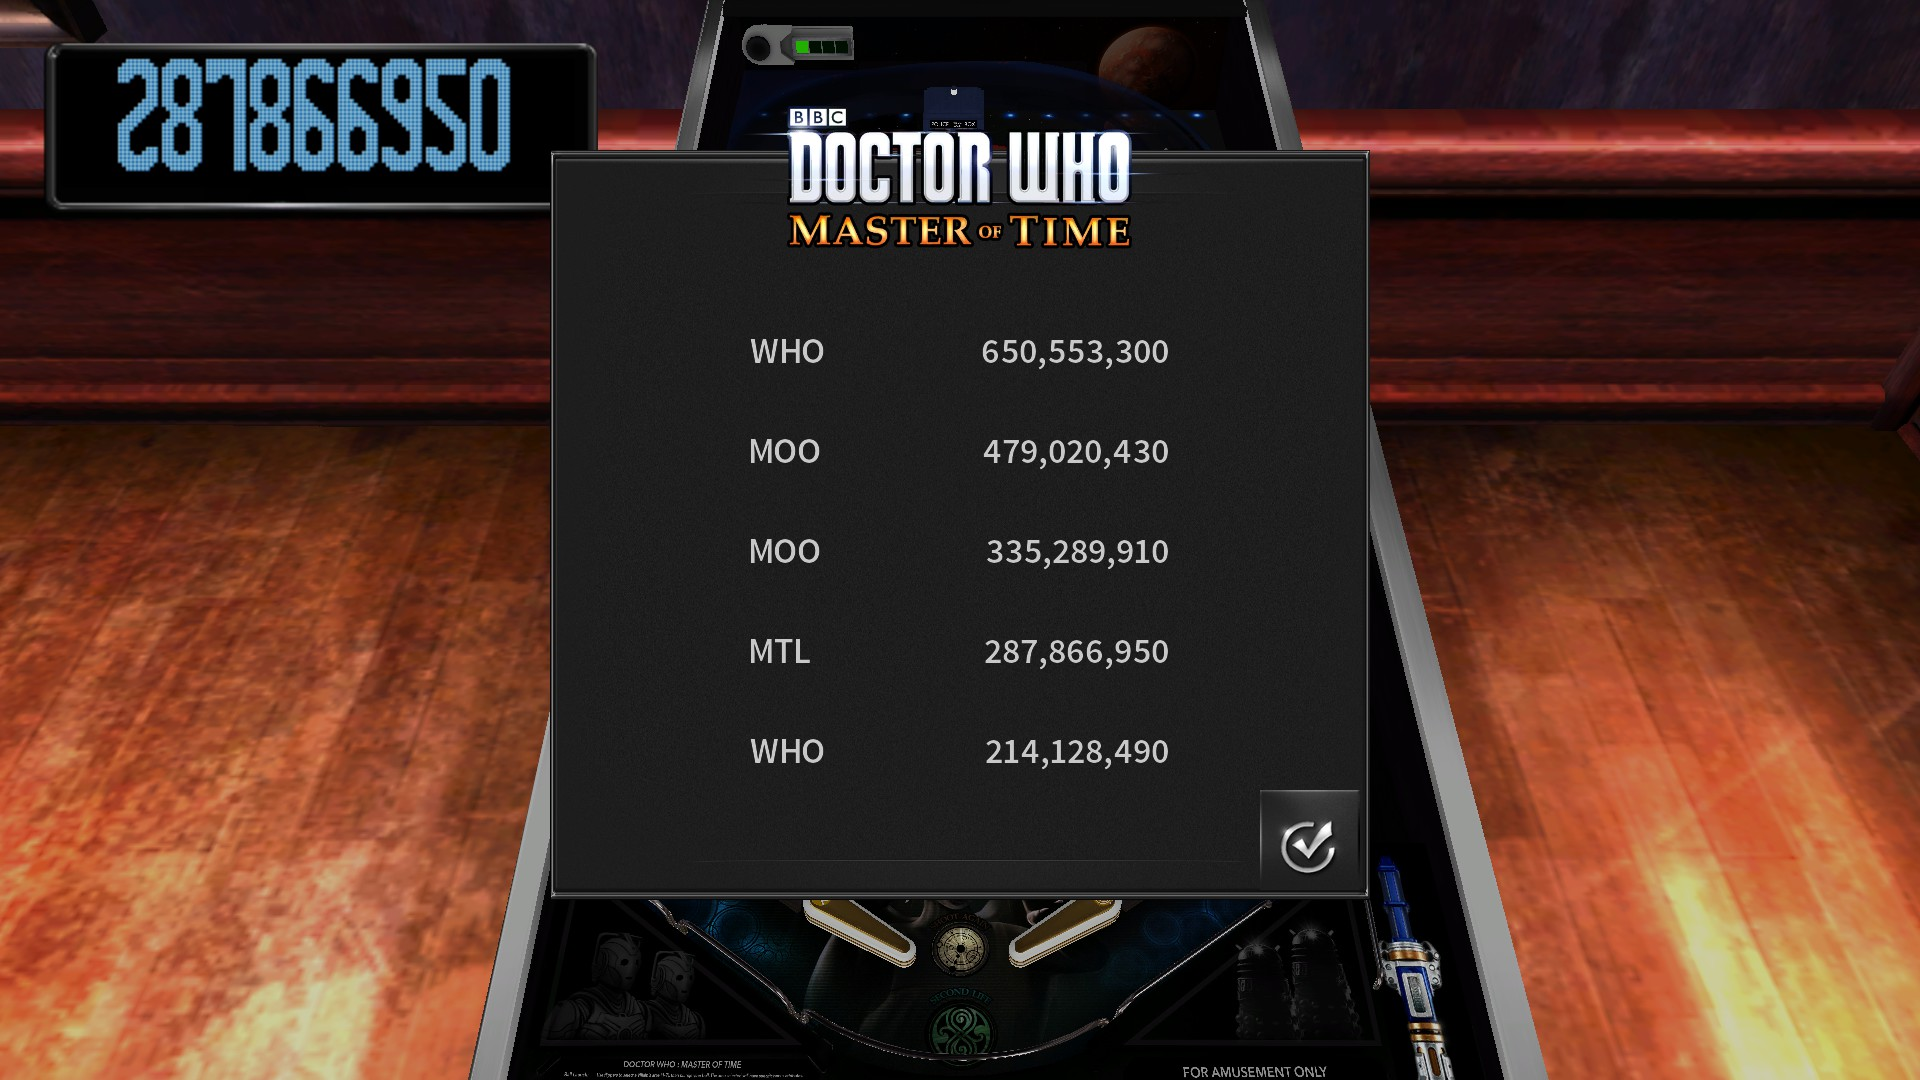 Mantalow: Pinball Arcade: Doctor Who: Master of Time (PC) 287,866,950 points on 2017-01-01 08:39:42